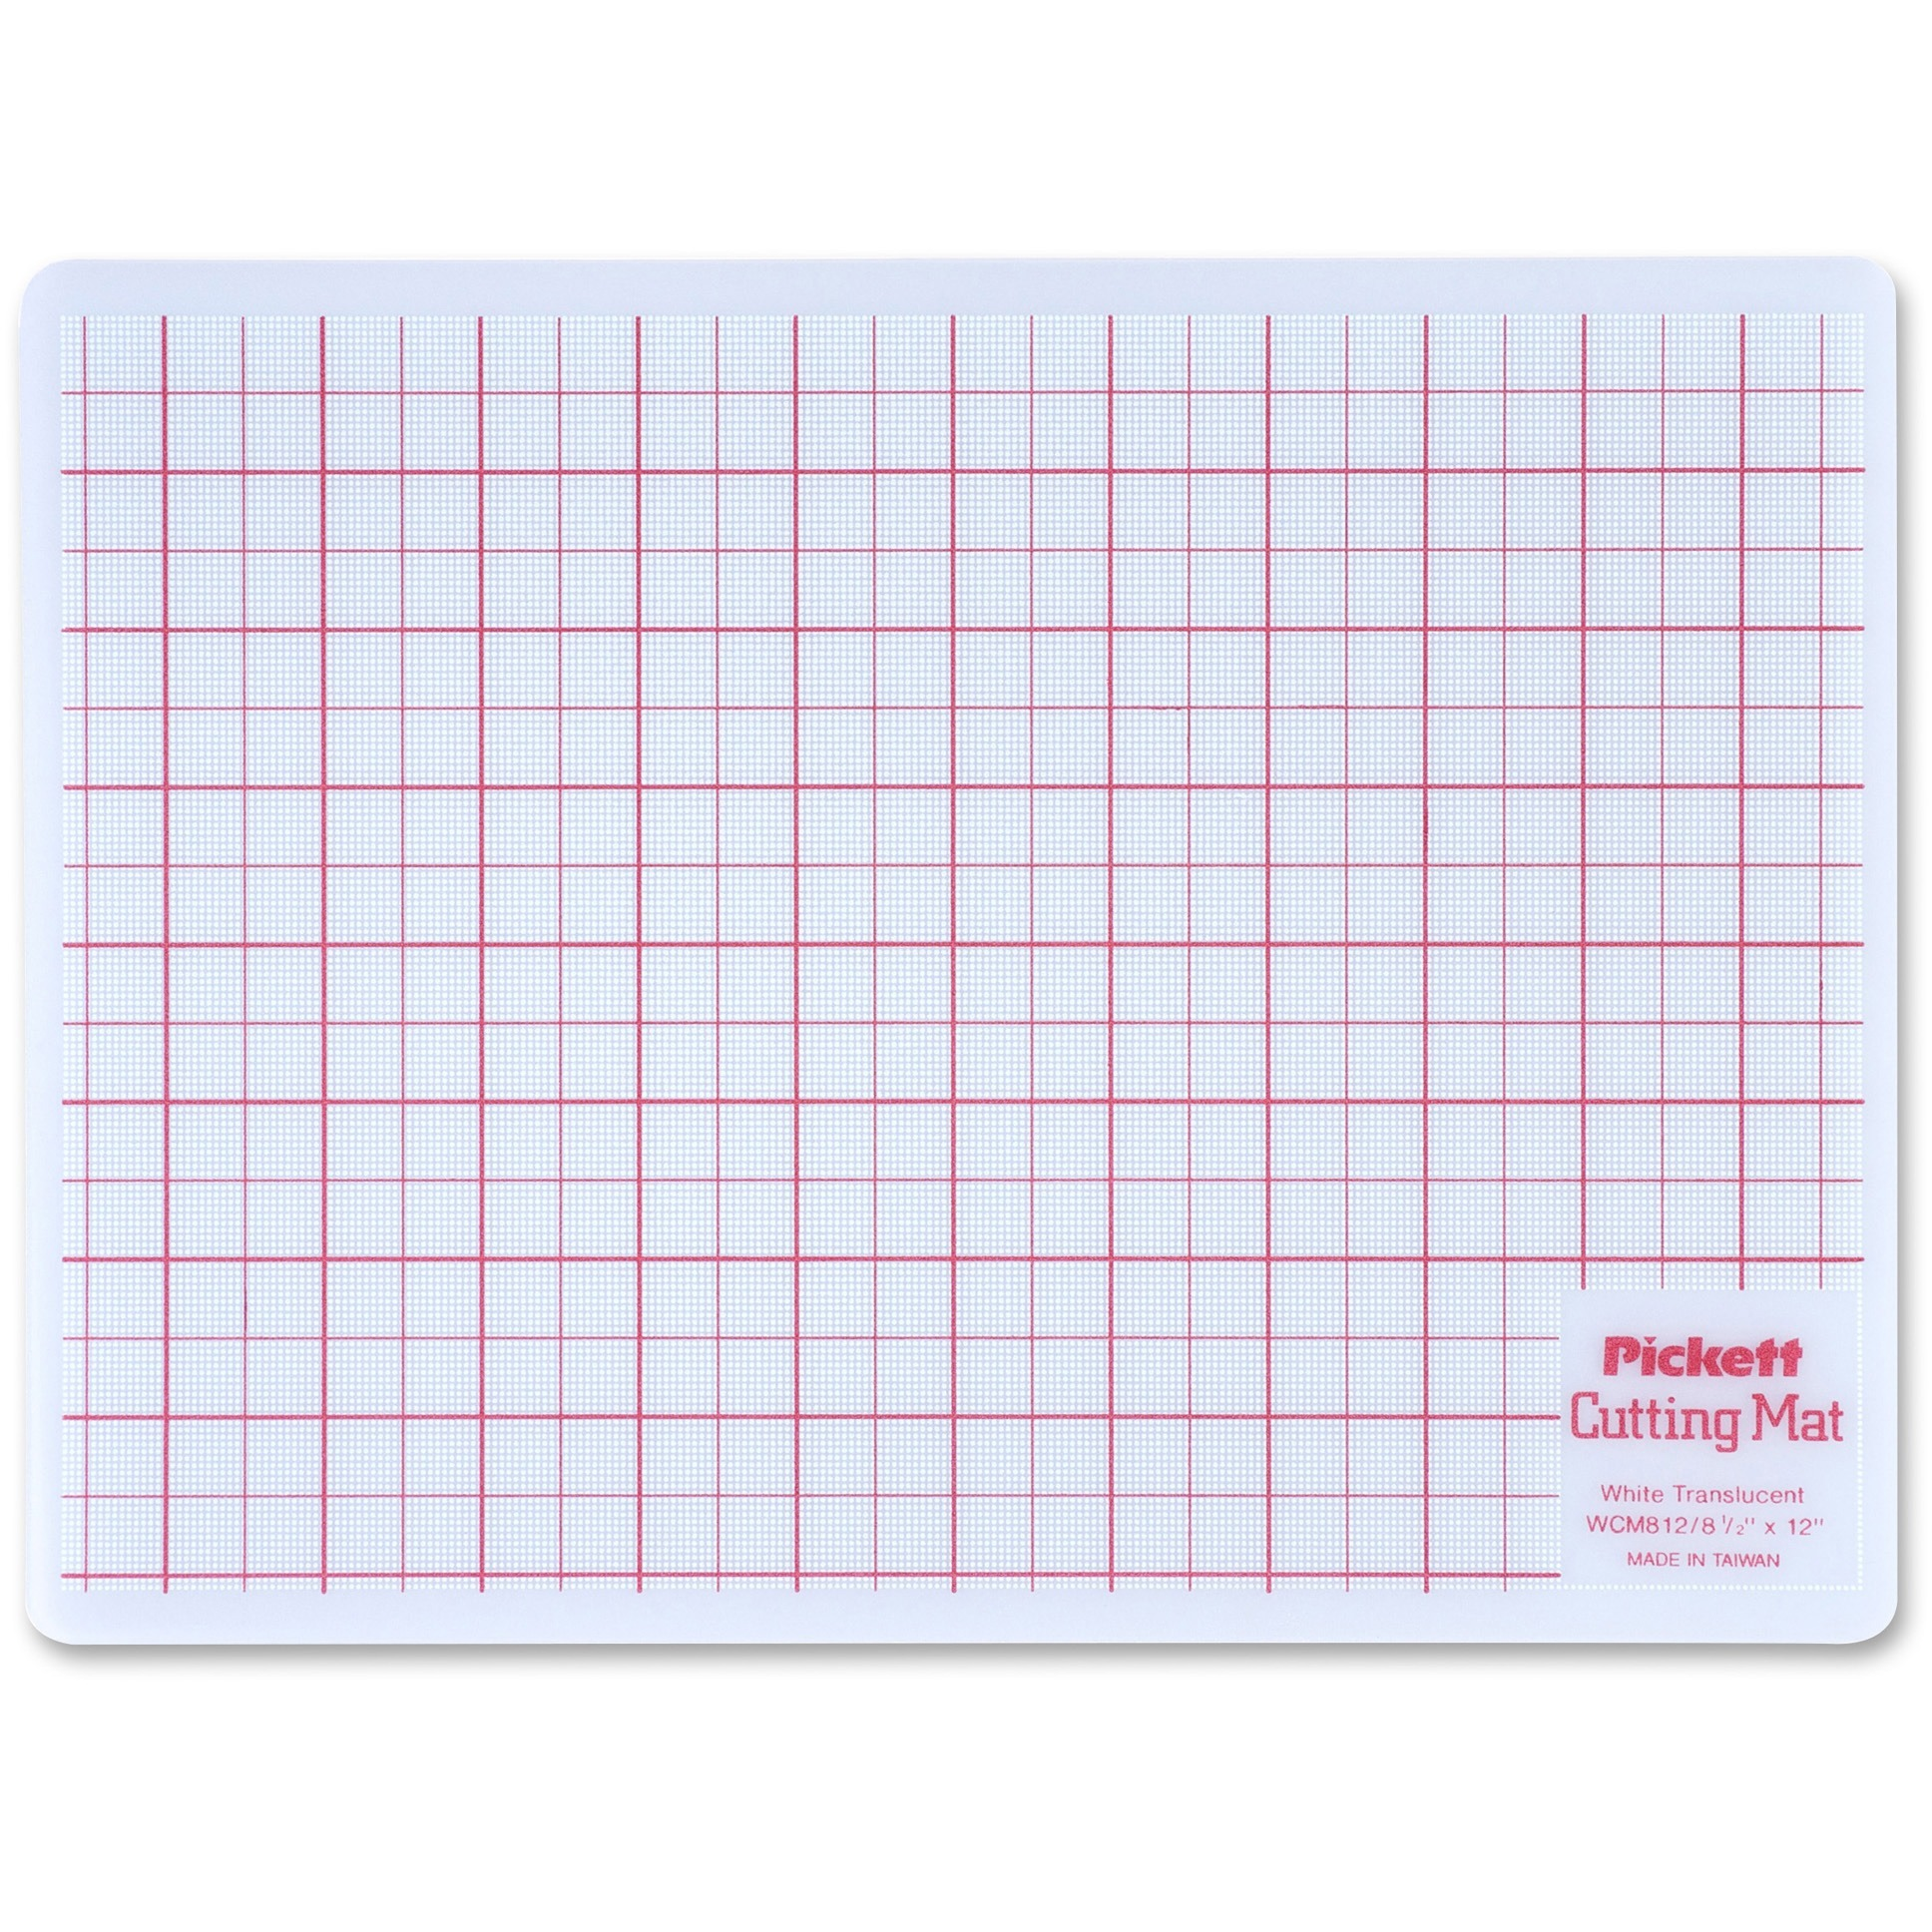 Chartpak, CHAWCM812, Cutting Mat, 1 Each, White